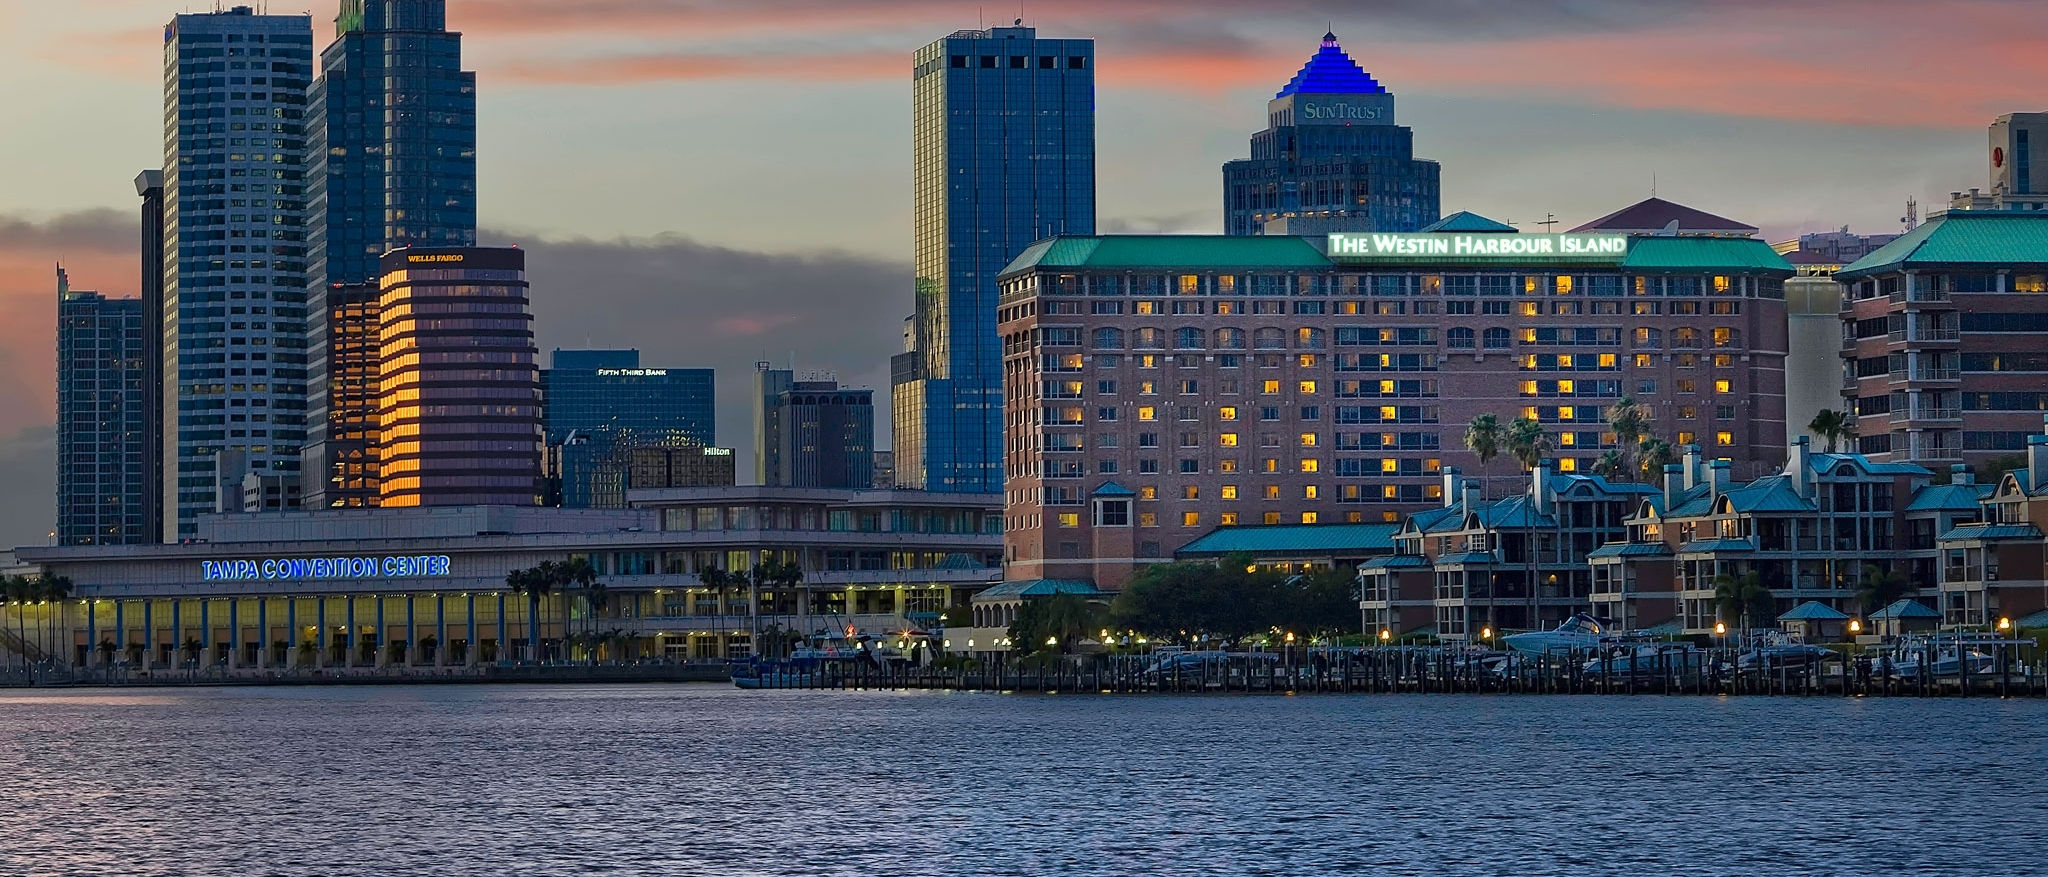 The Westin Tampa Harbour Island - Tampa Skyline